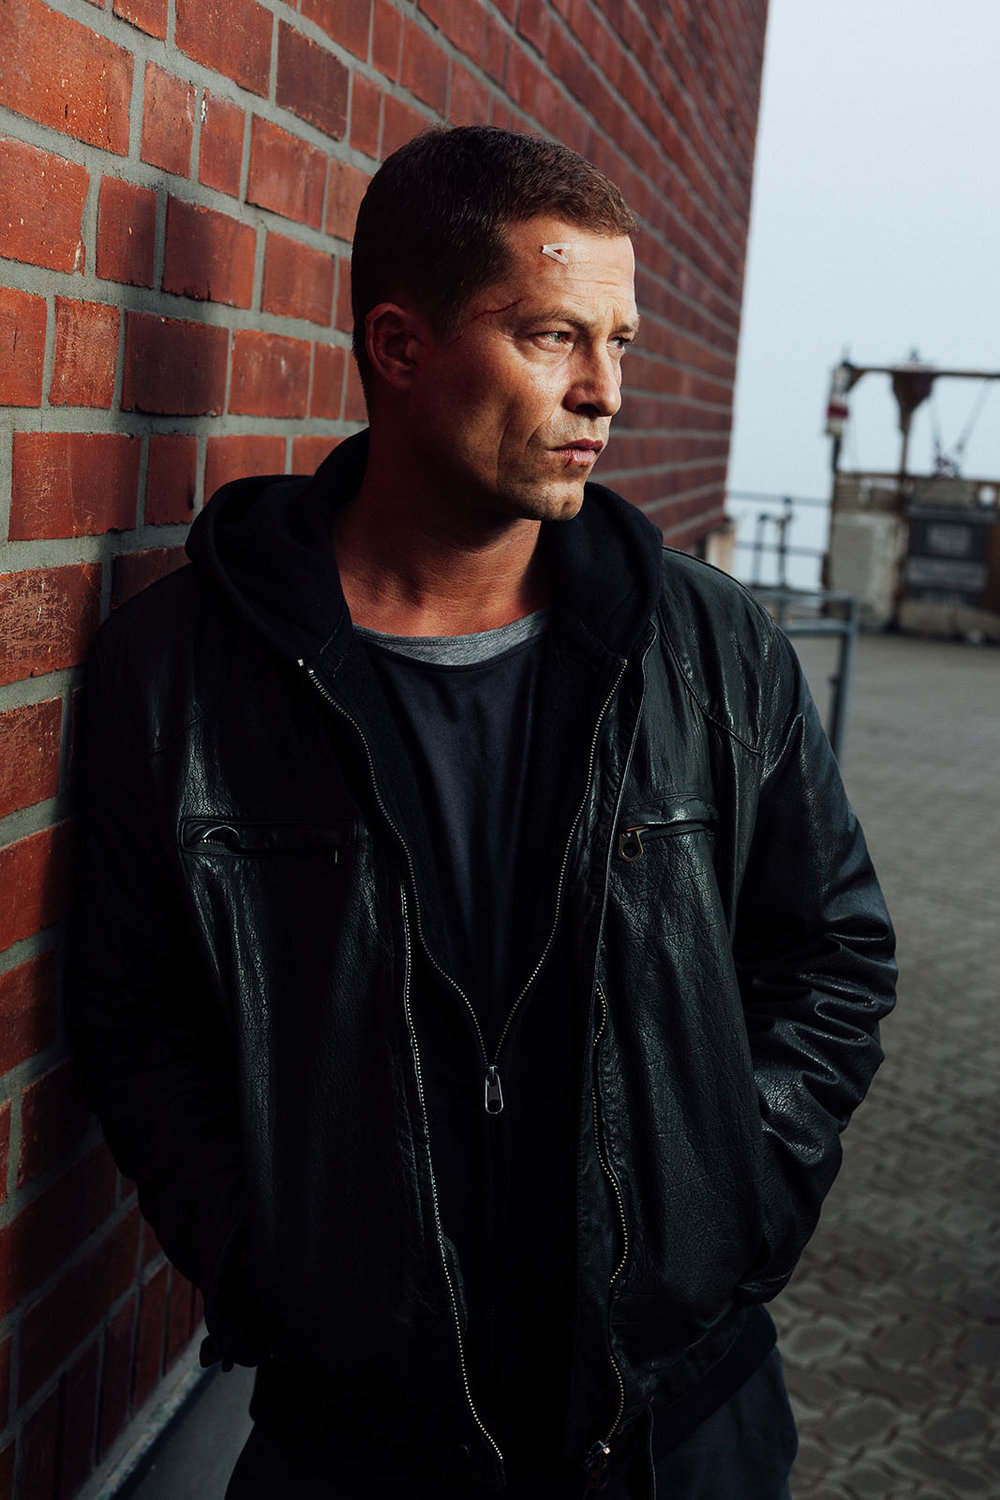 Til-Schweiger-Mark-Mattingly-2855.jpg